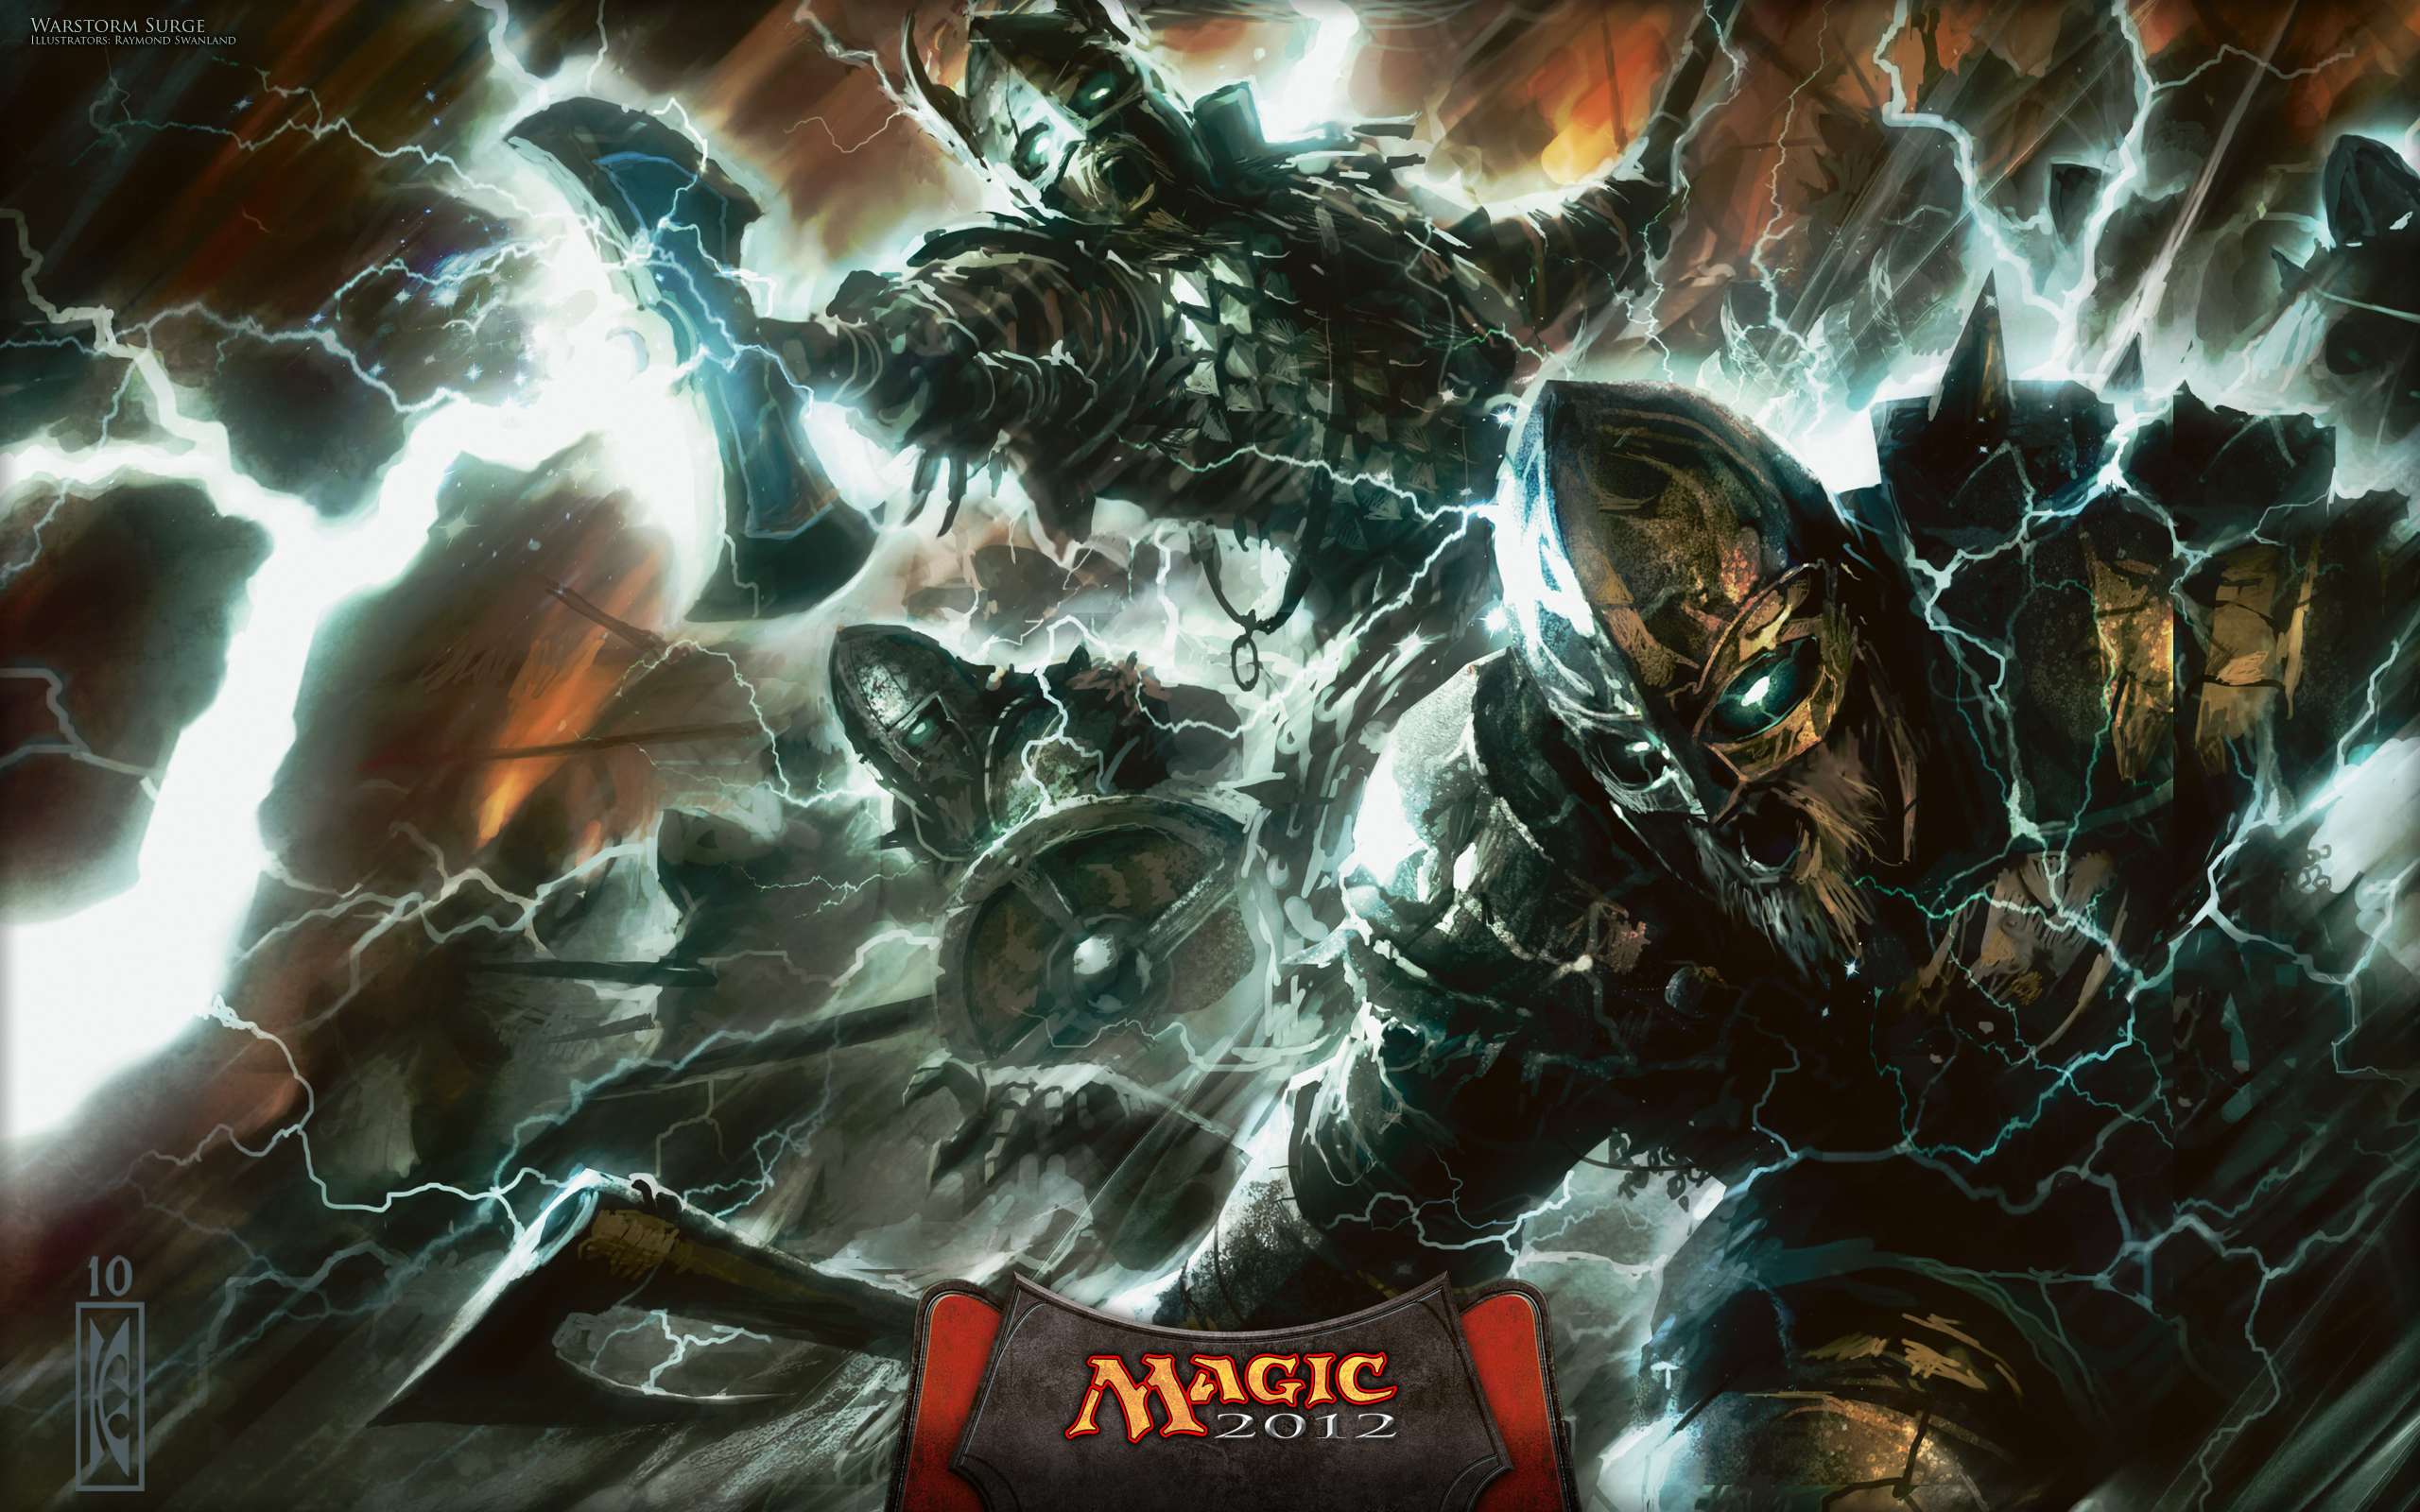 Wallpaper Of The Week Warstorm Surge Magic The Gathering